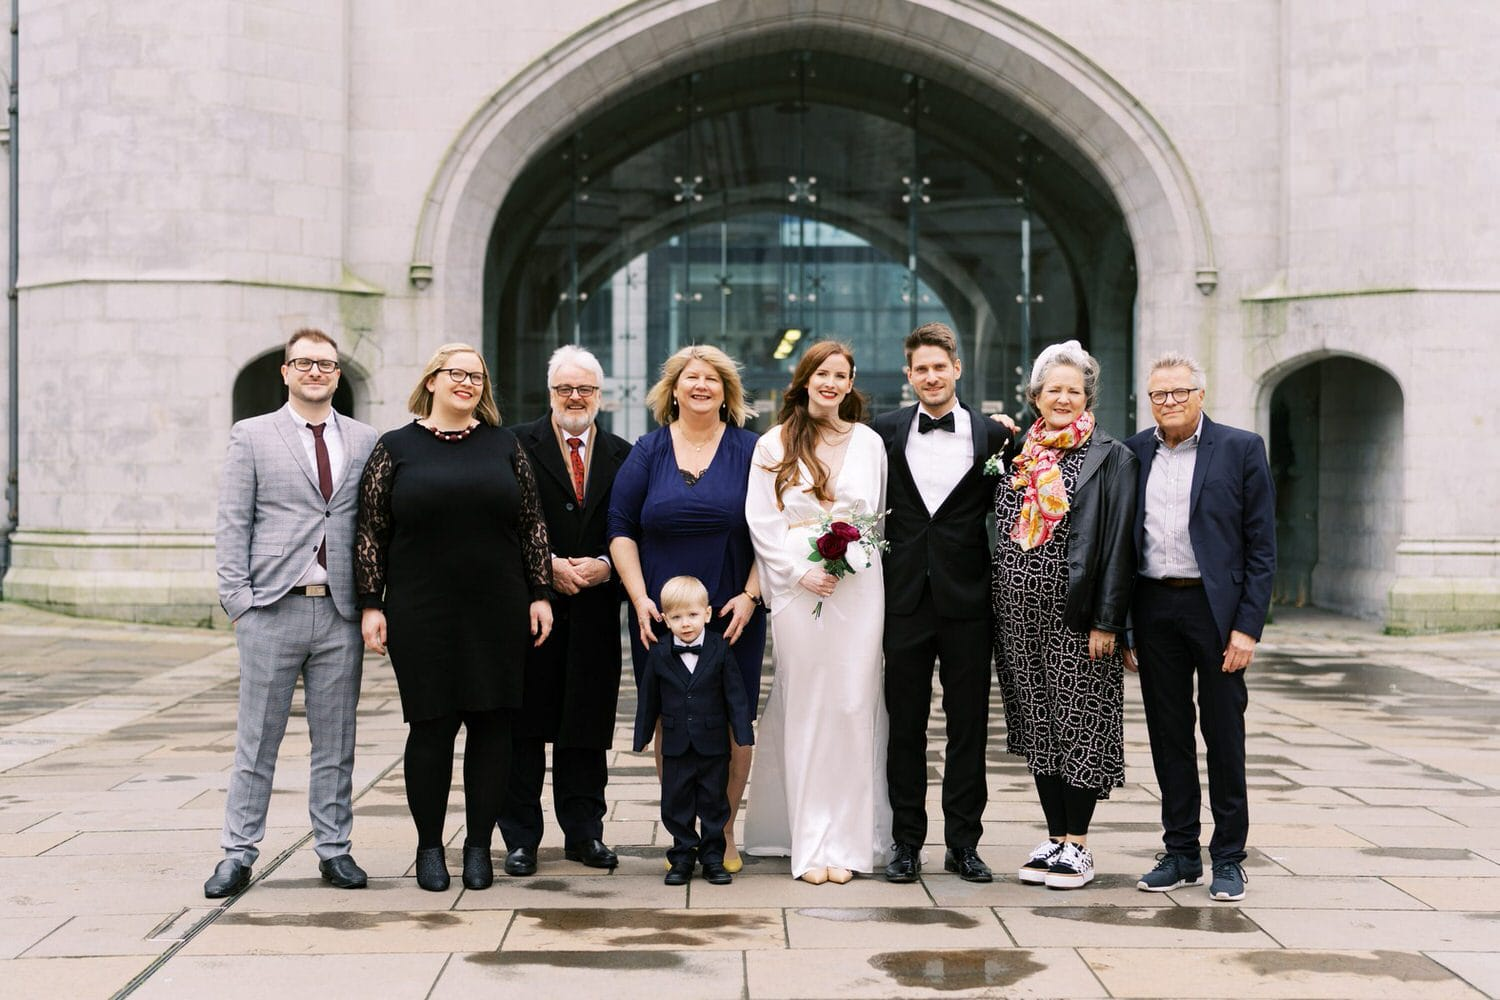 Aberdeen, Marischal College, Microwedding, Wedding Photography